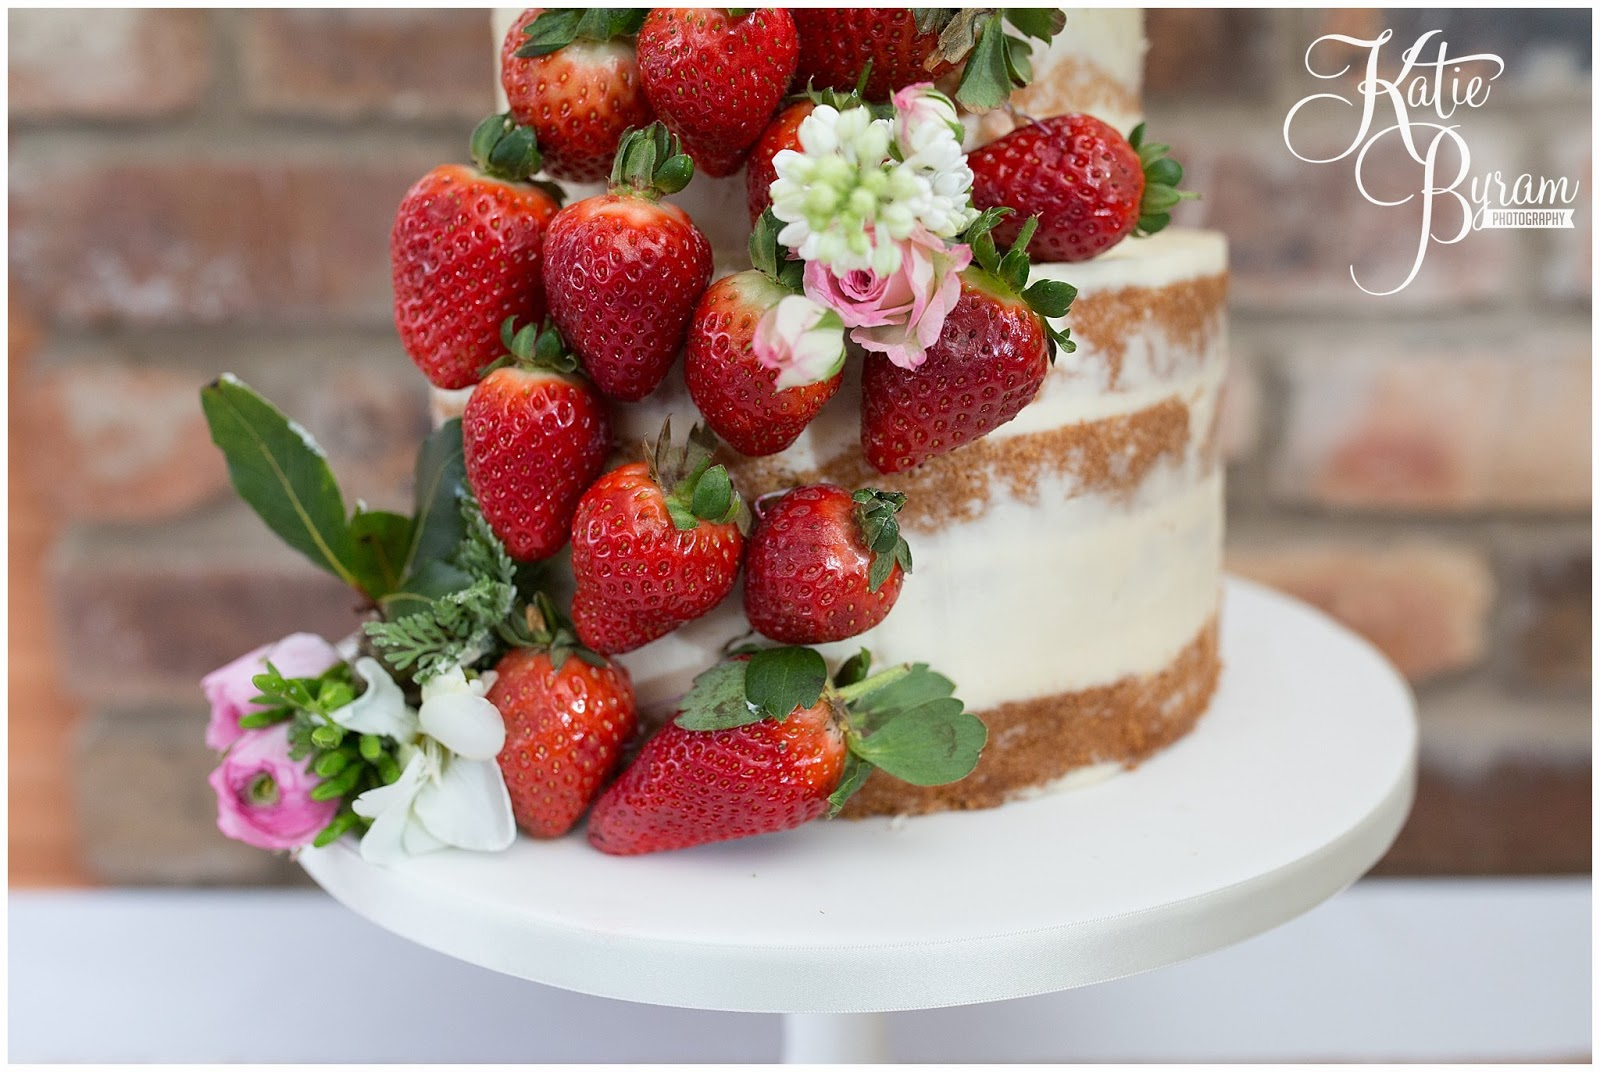 strawberry wedding cake, the master cakesmith, dawn cake maker, newton hall, ellingham hall, alnwick garden, northumberland wedding cake, northumberland wedding, katie byram photography